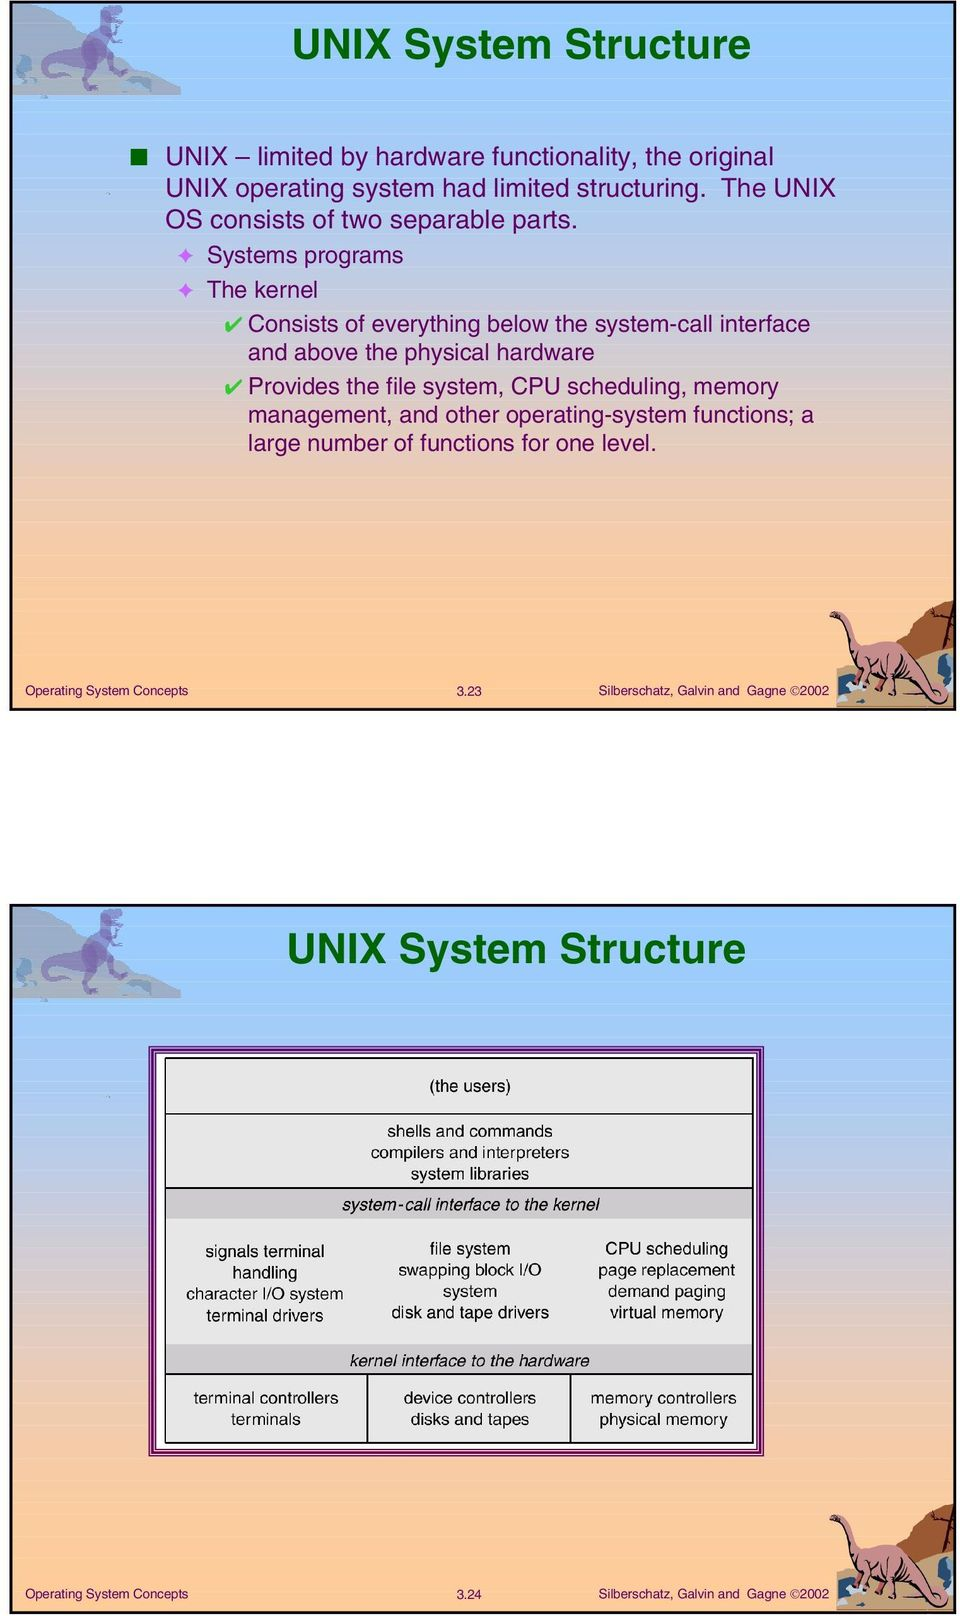 Systems programs The kernel Consists of everything below the system-call interface and above the physical